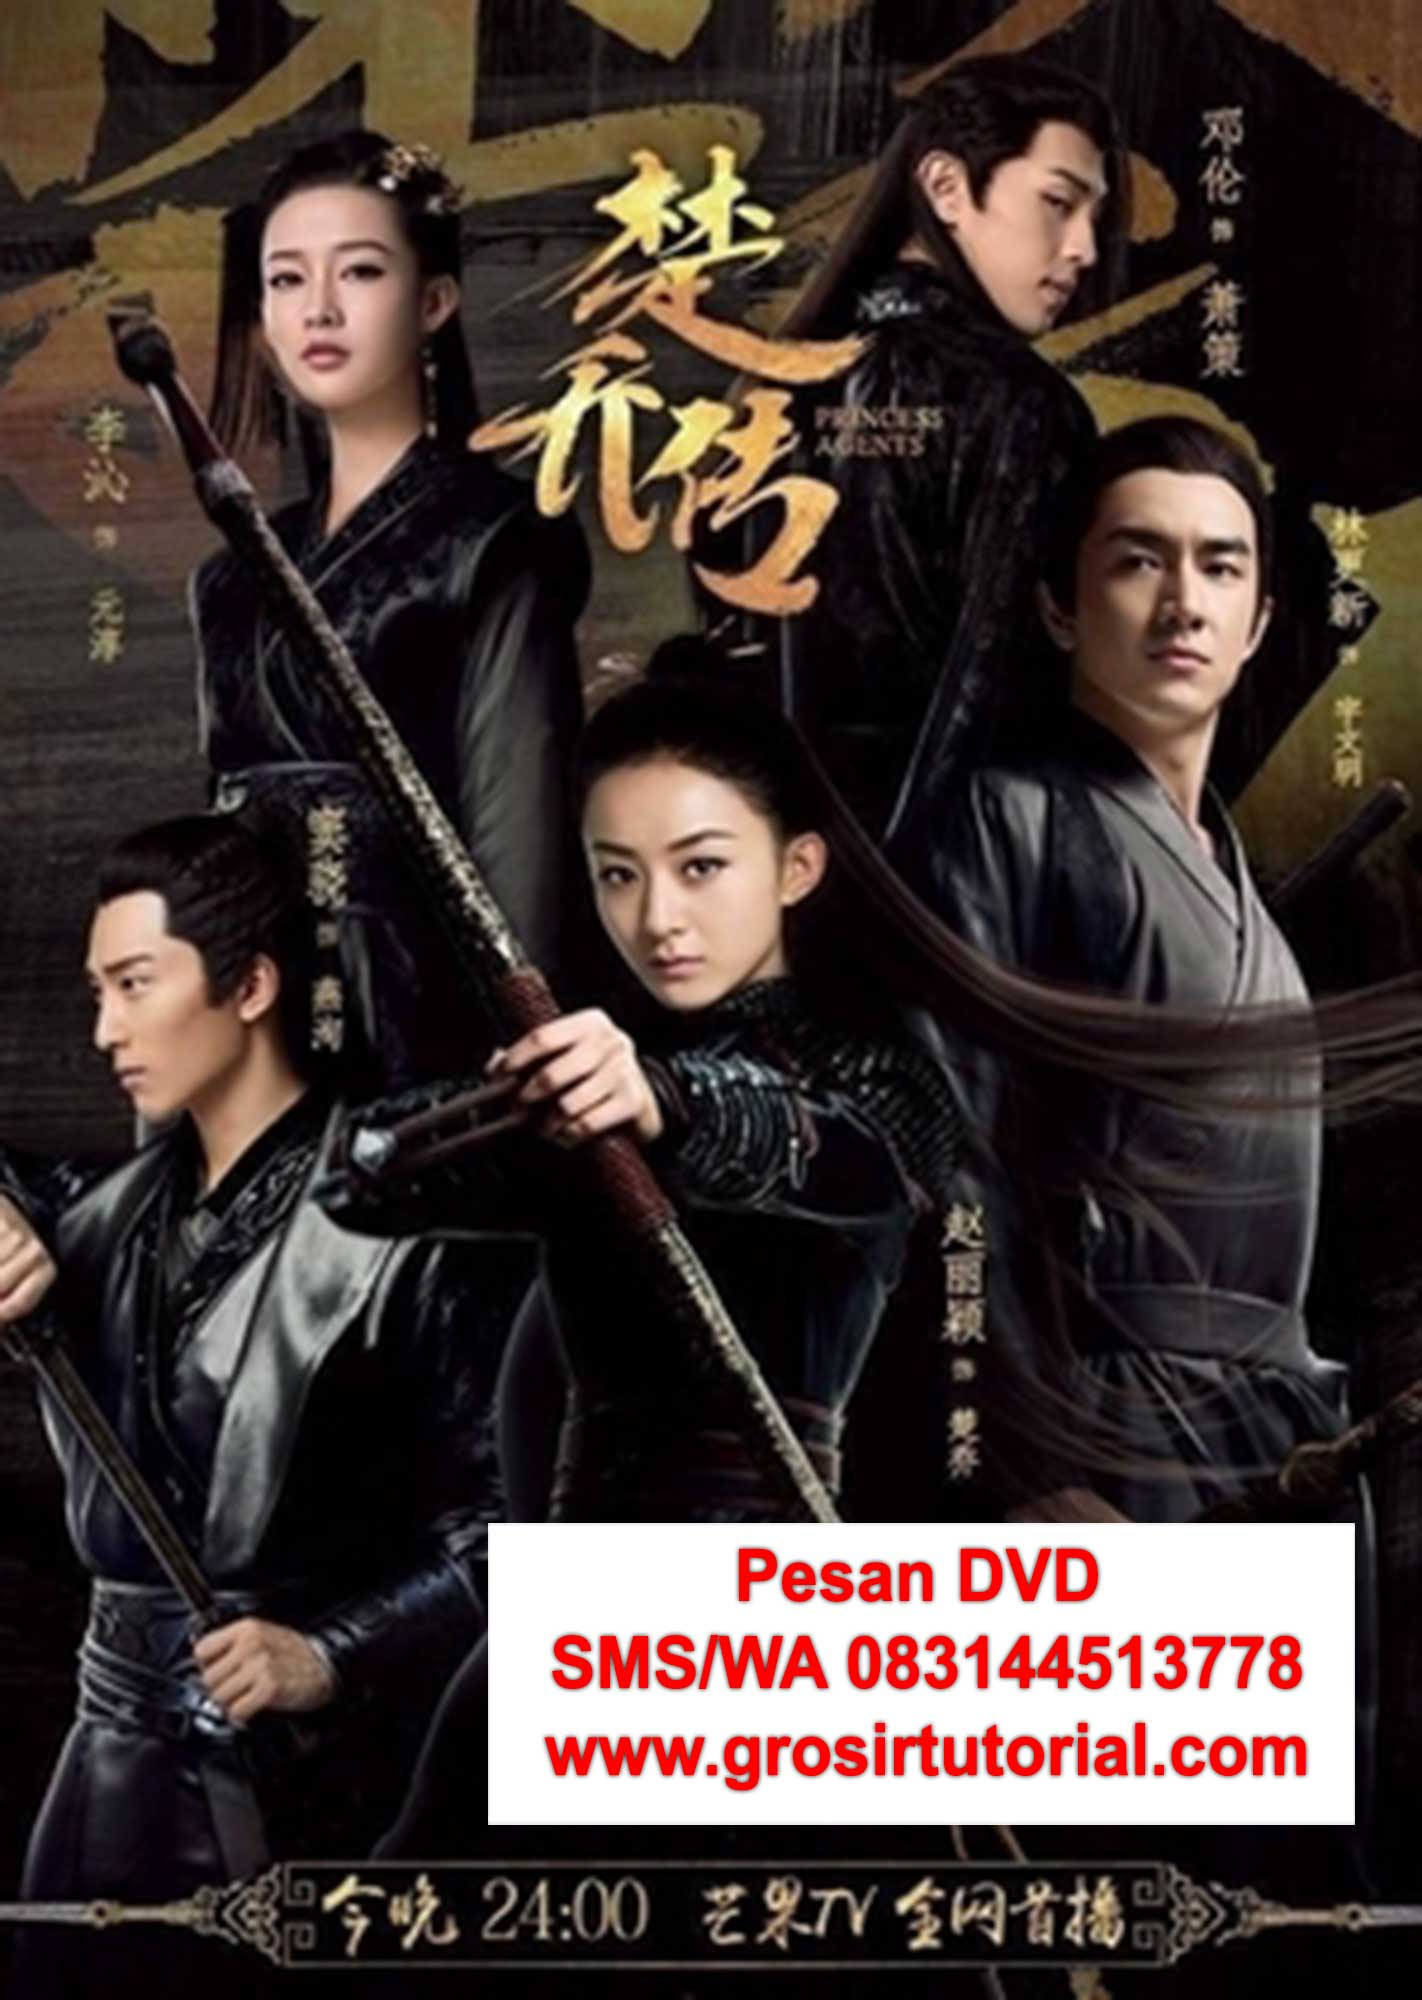 beli-DVD-mandarin-Princes-Agents